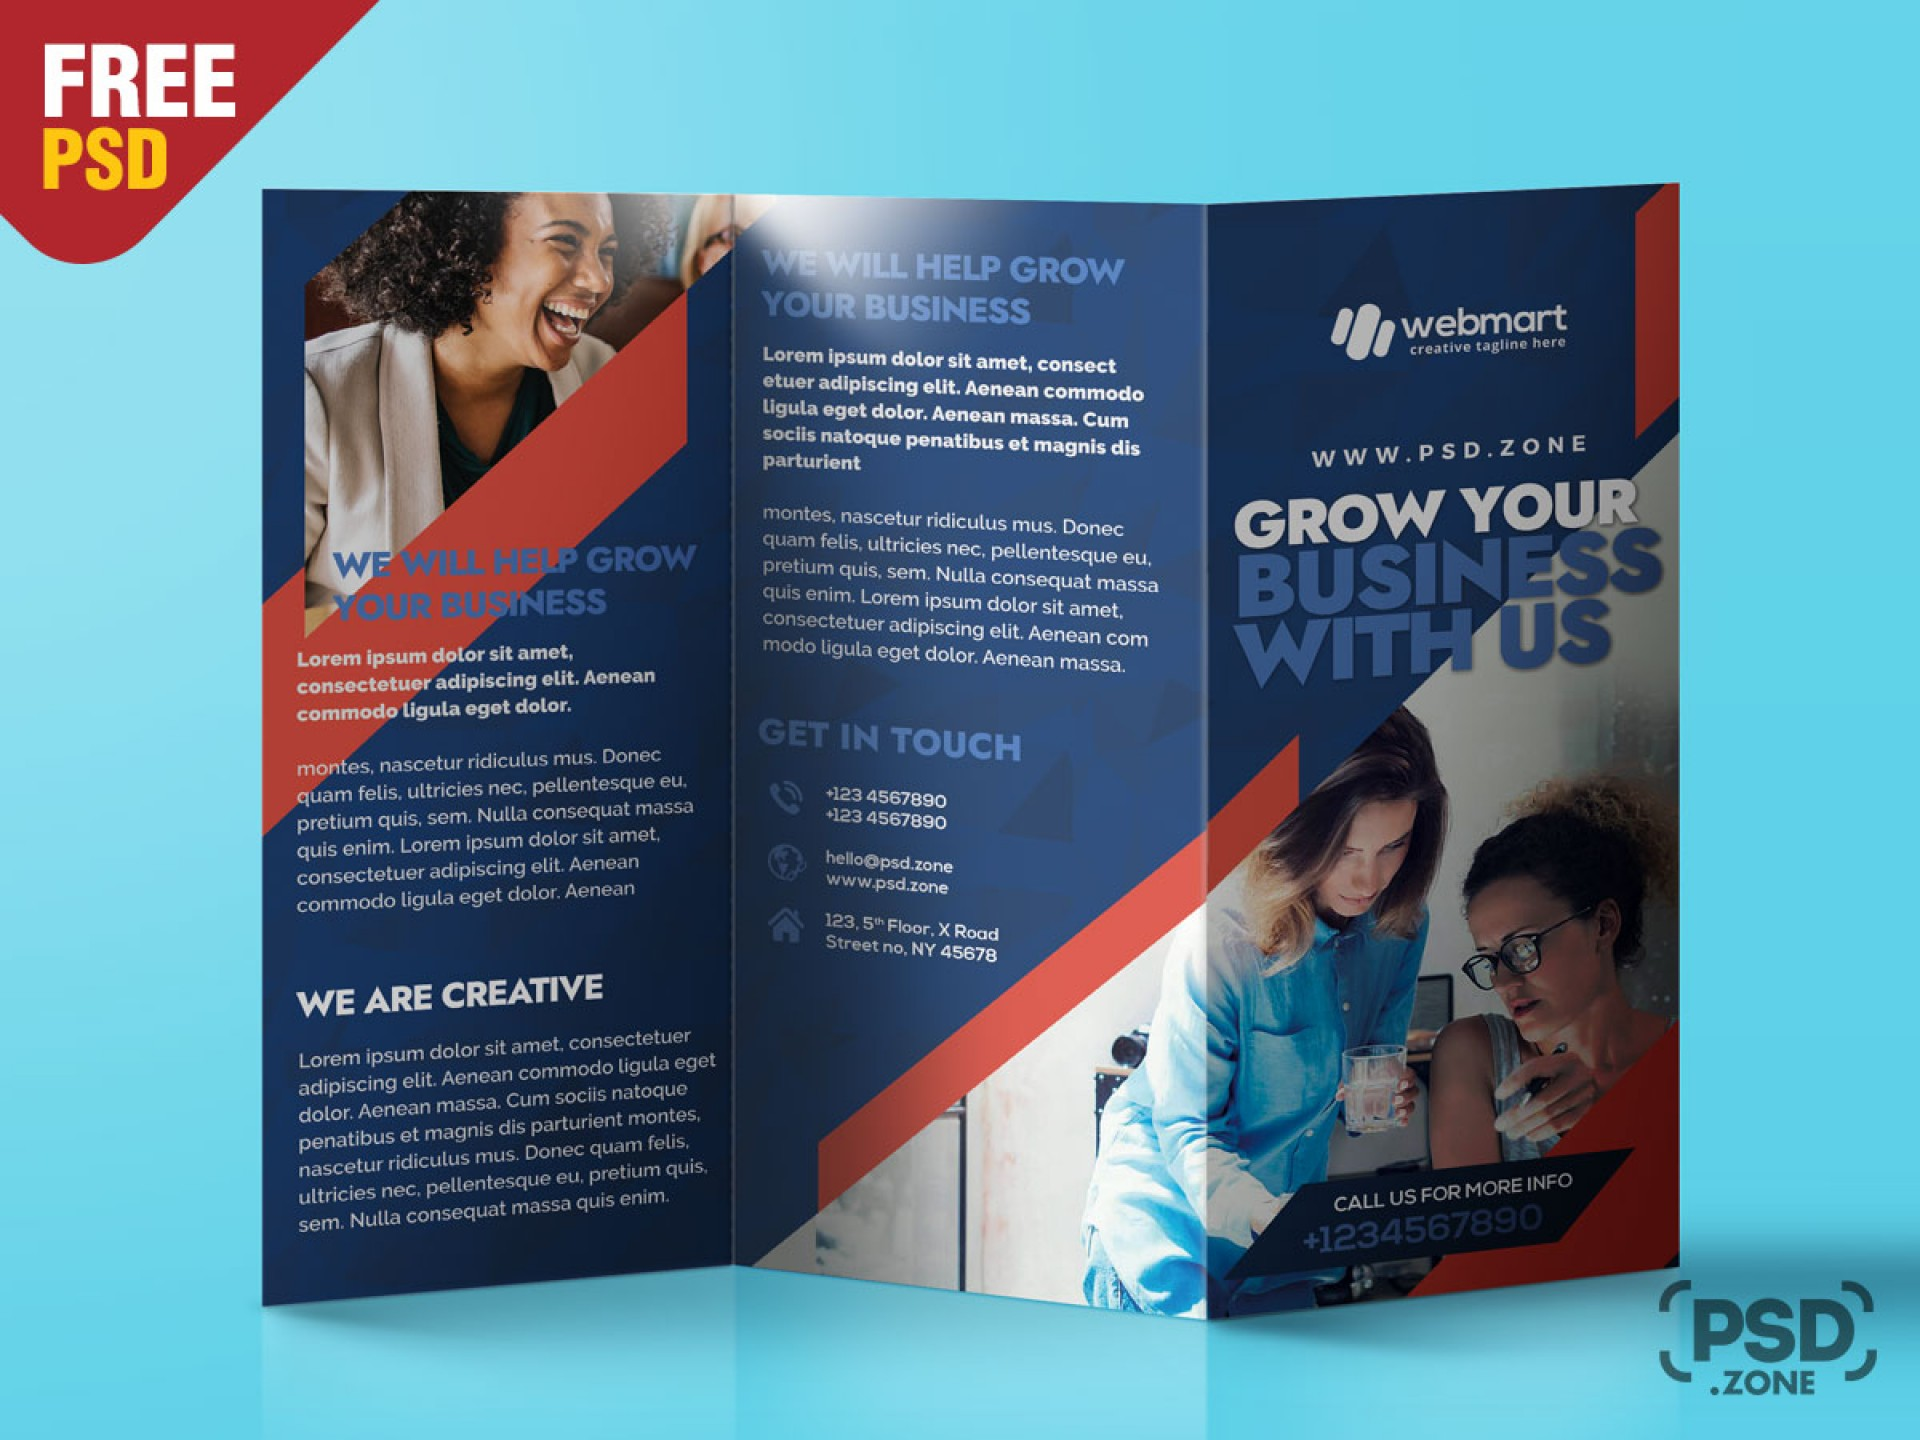 009 Awful Free Brochure Template Psd Example  A4 Download File Front And Back Travel1920